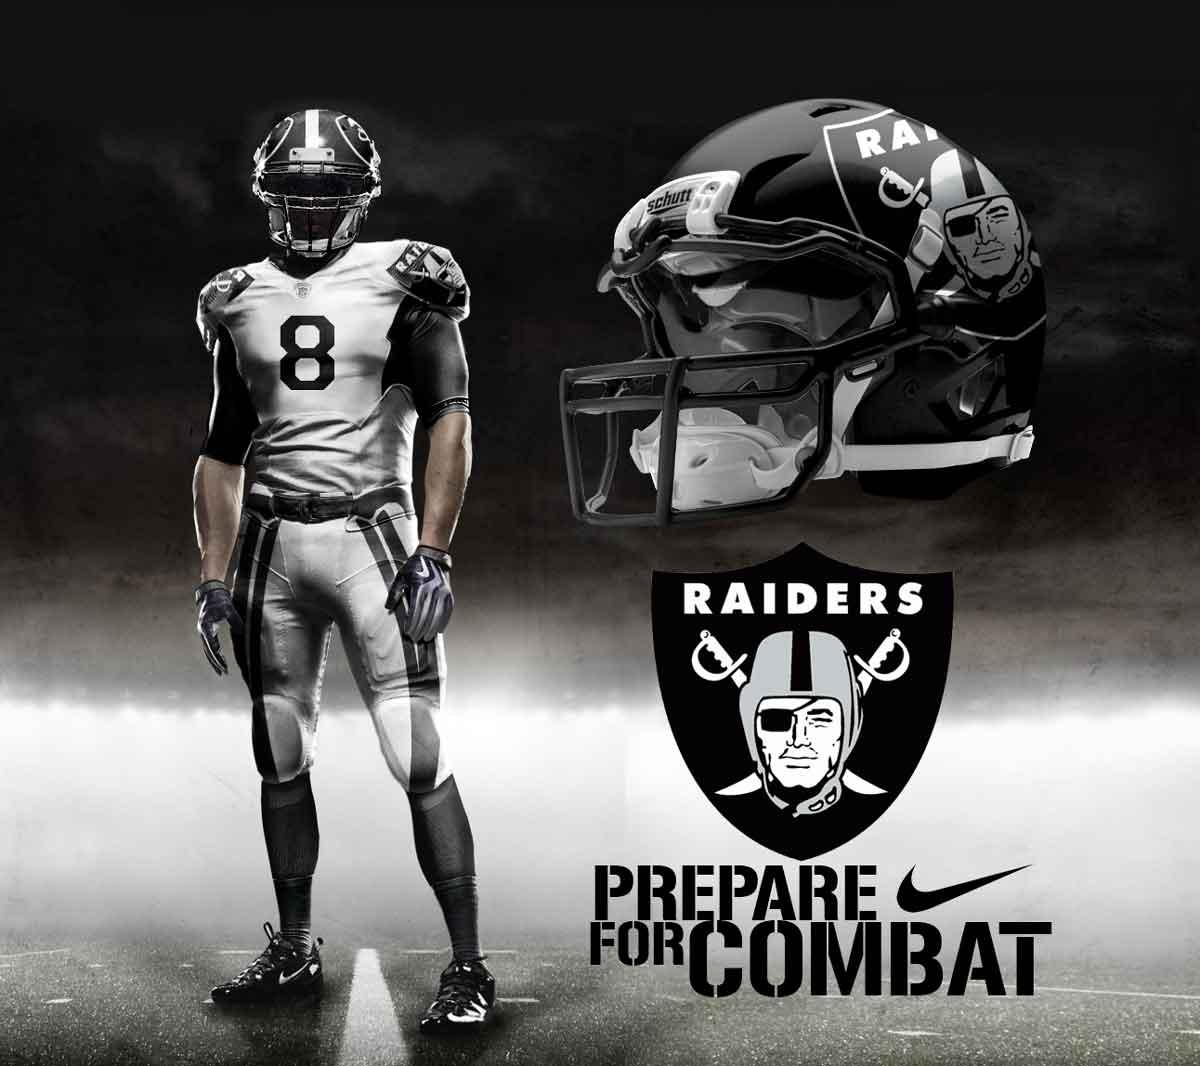 Oakland-Raiders-Away.jpg (1200×1066)